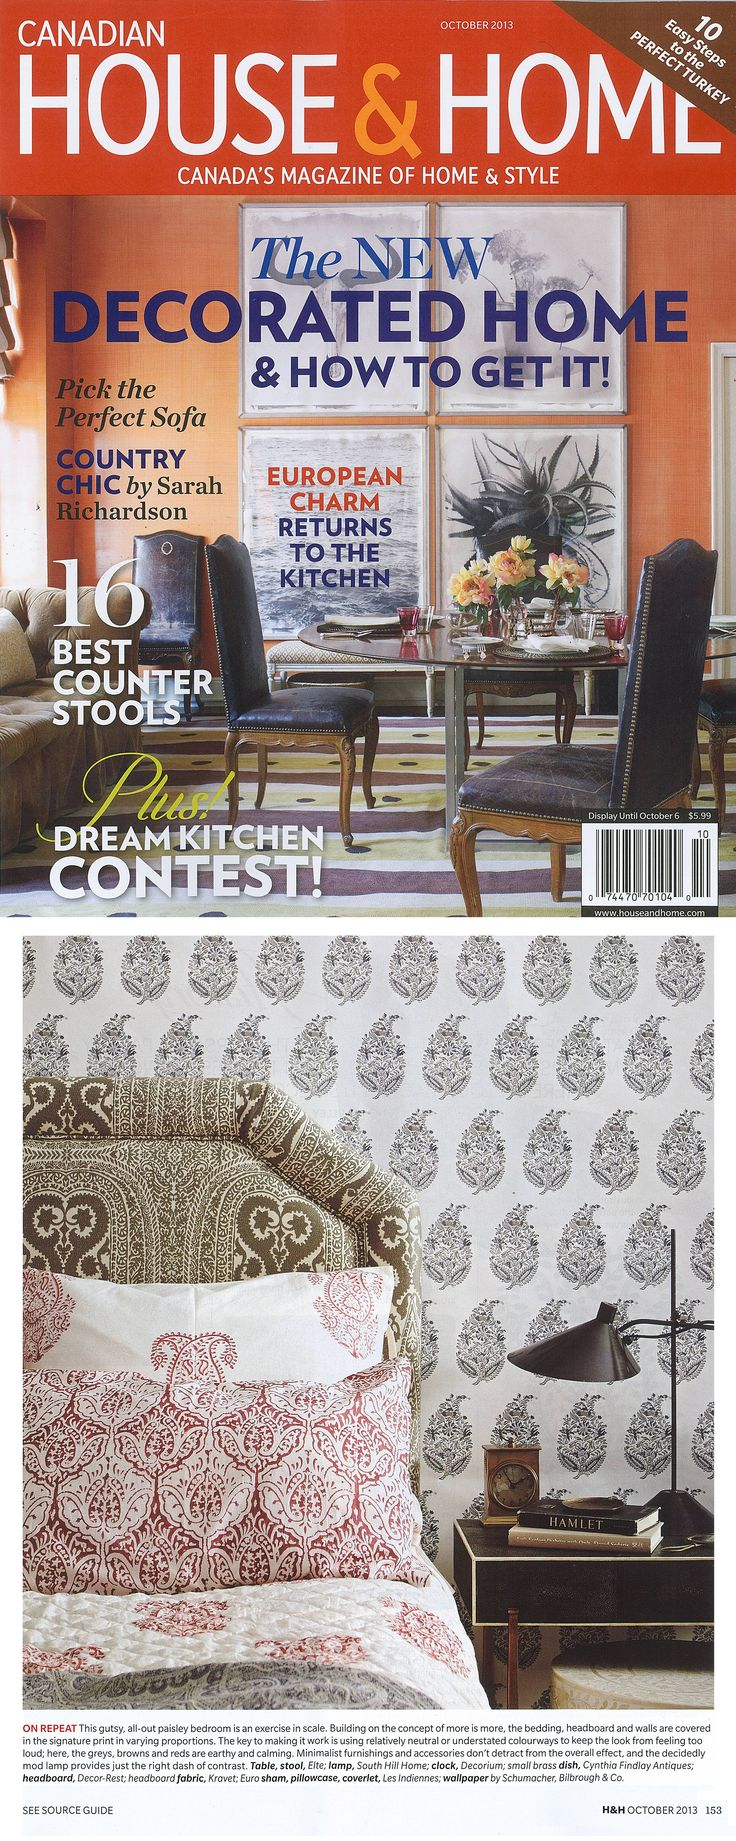 The October Issue Of Canadian House And Home Magazine Has